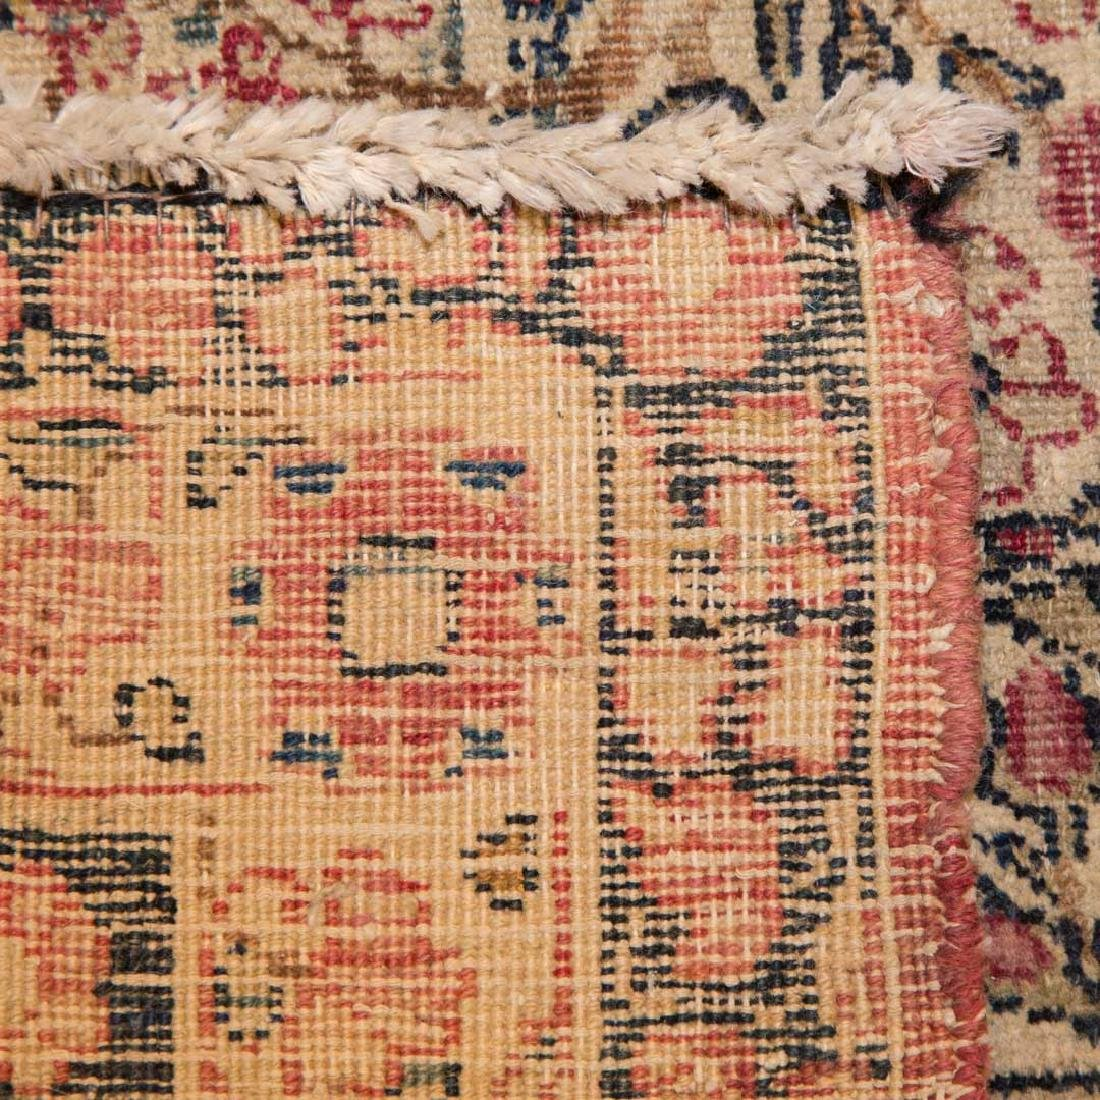 Antique Lavar Kerman rug, approx. 2.11 x 4.5 - 3